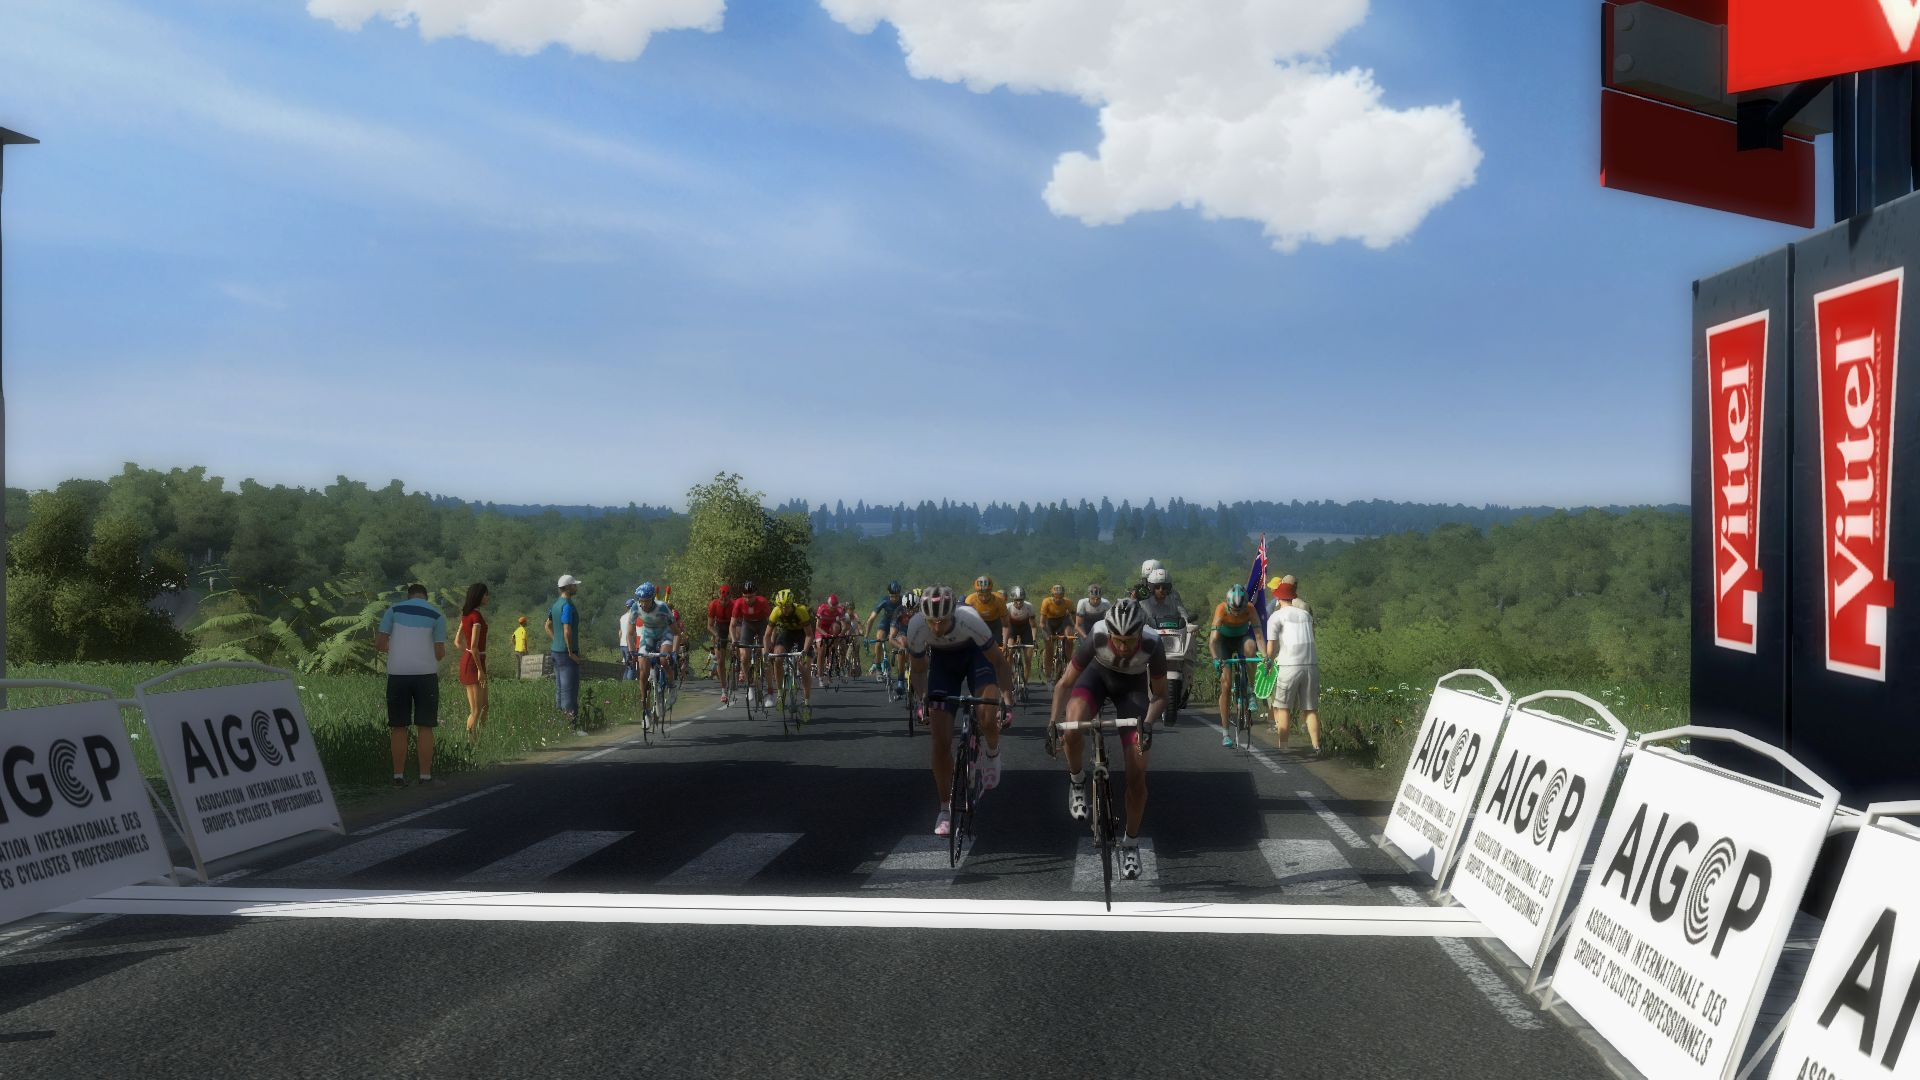 pcmdaily.com/images/mg/2019/Races/HC/Slovenie/mg19_slo_s02_21.jpg